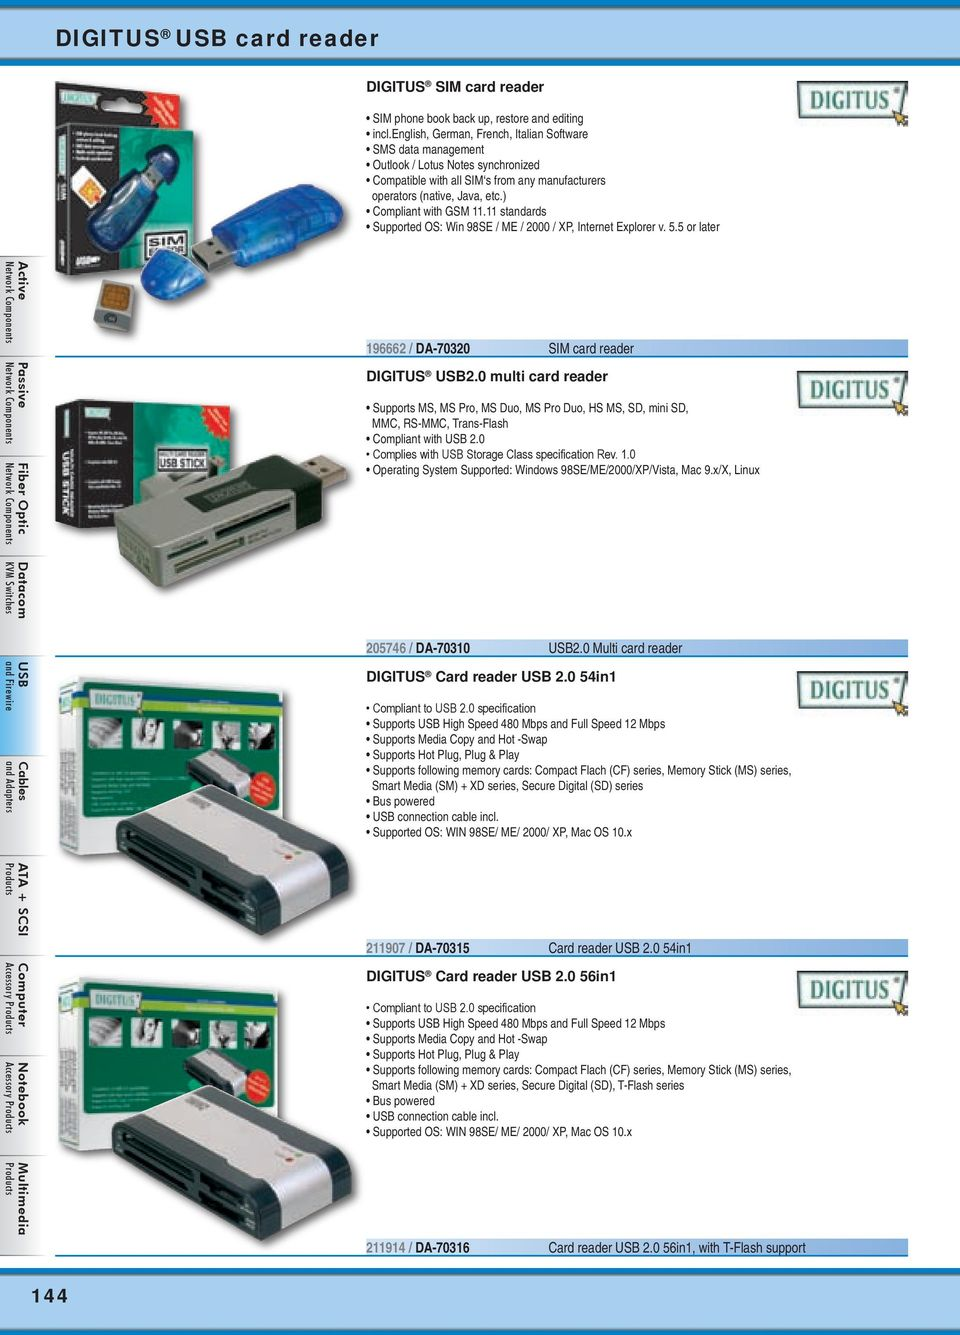 11 standards Supported OS: Win 98SE / ME / 2000 / XP, Internet Explorer v. 5.5 or later 196662 / DA-70320 SIM card reader DIGITUS 2.